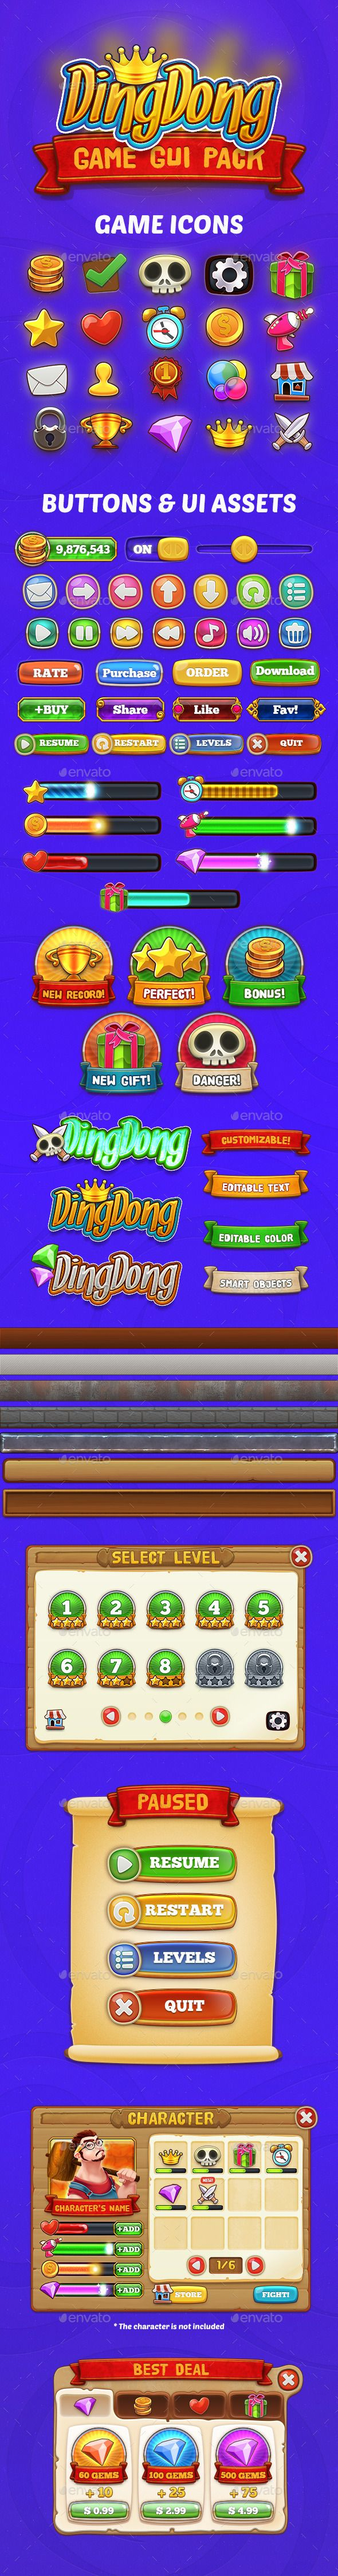 DingDong: Game GUI Pack - User Interfaces Game Assets | Download http://graphicriver.net/item/dingdong-game-gui-pack/9069938?ref=sinzo